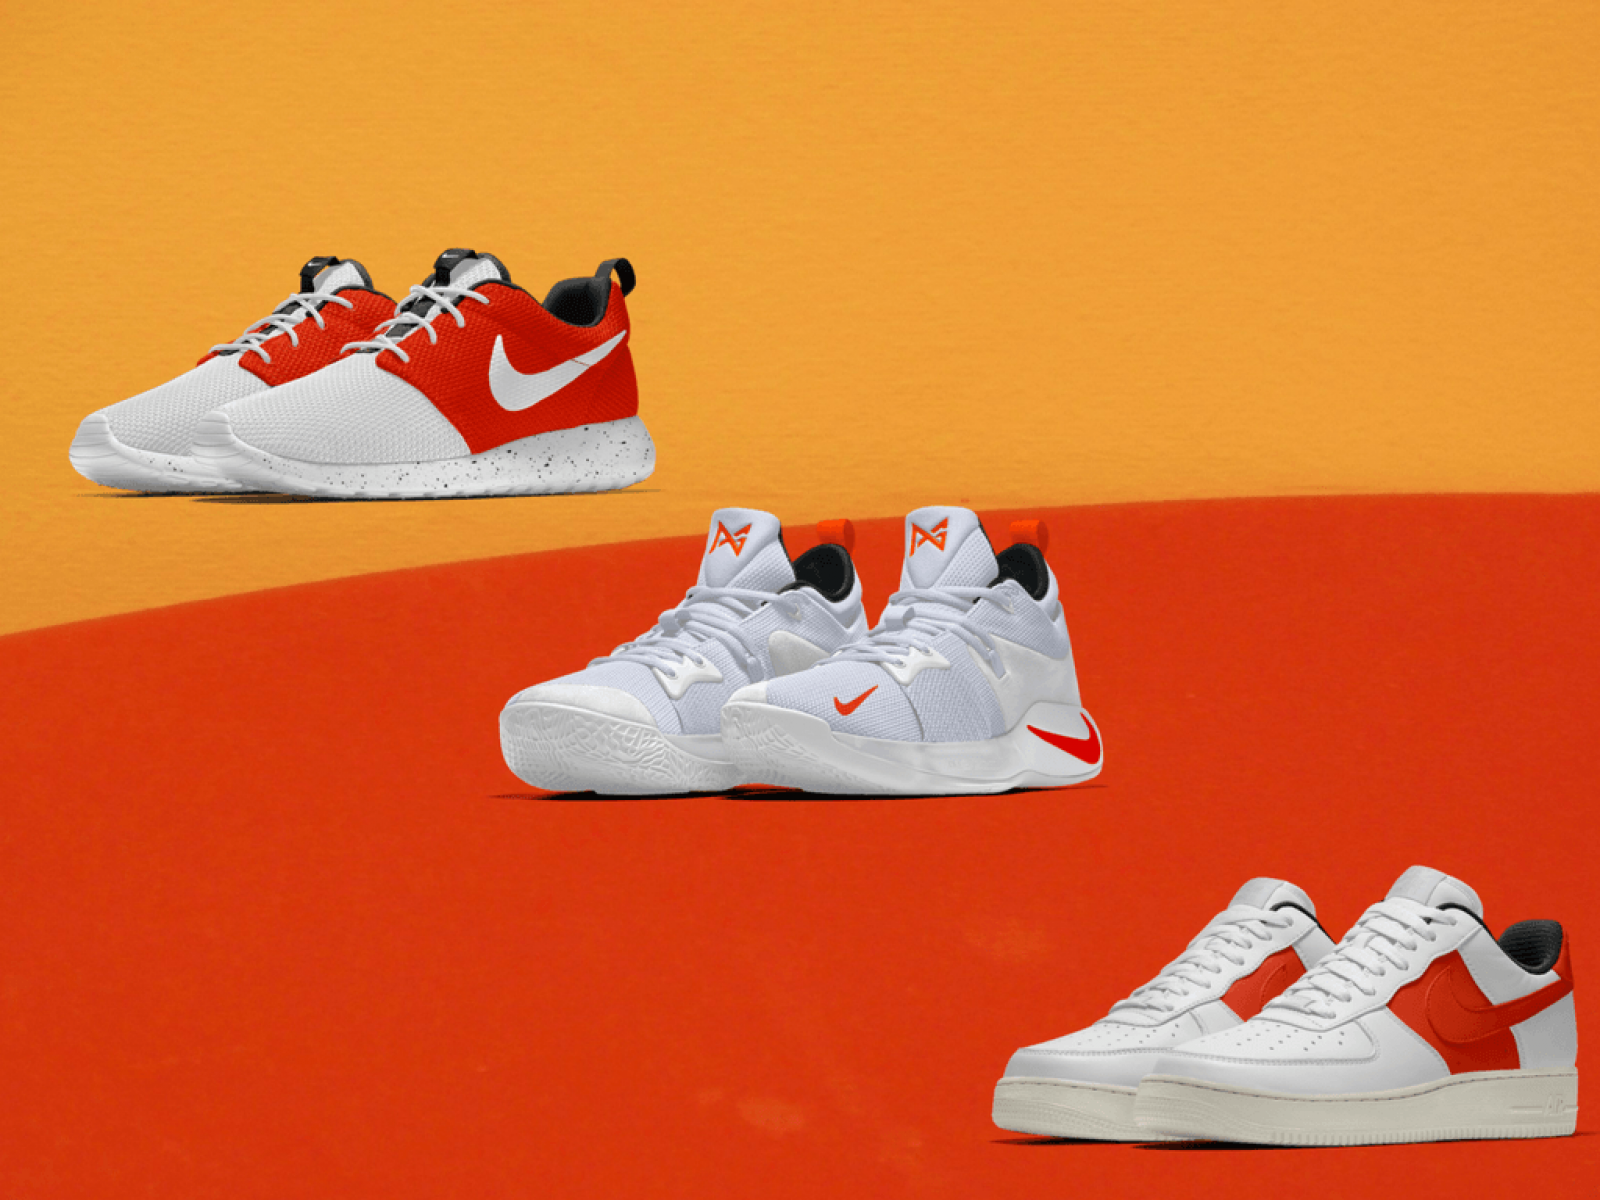 LXRY X Team Orange Nike Shoe Concepts